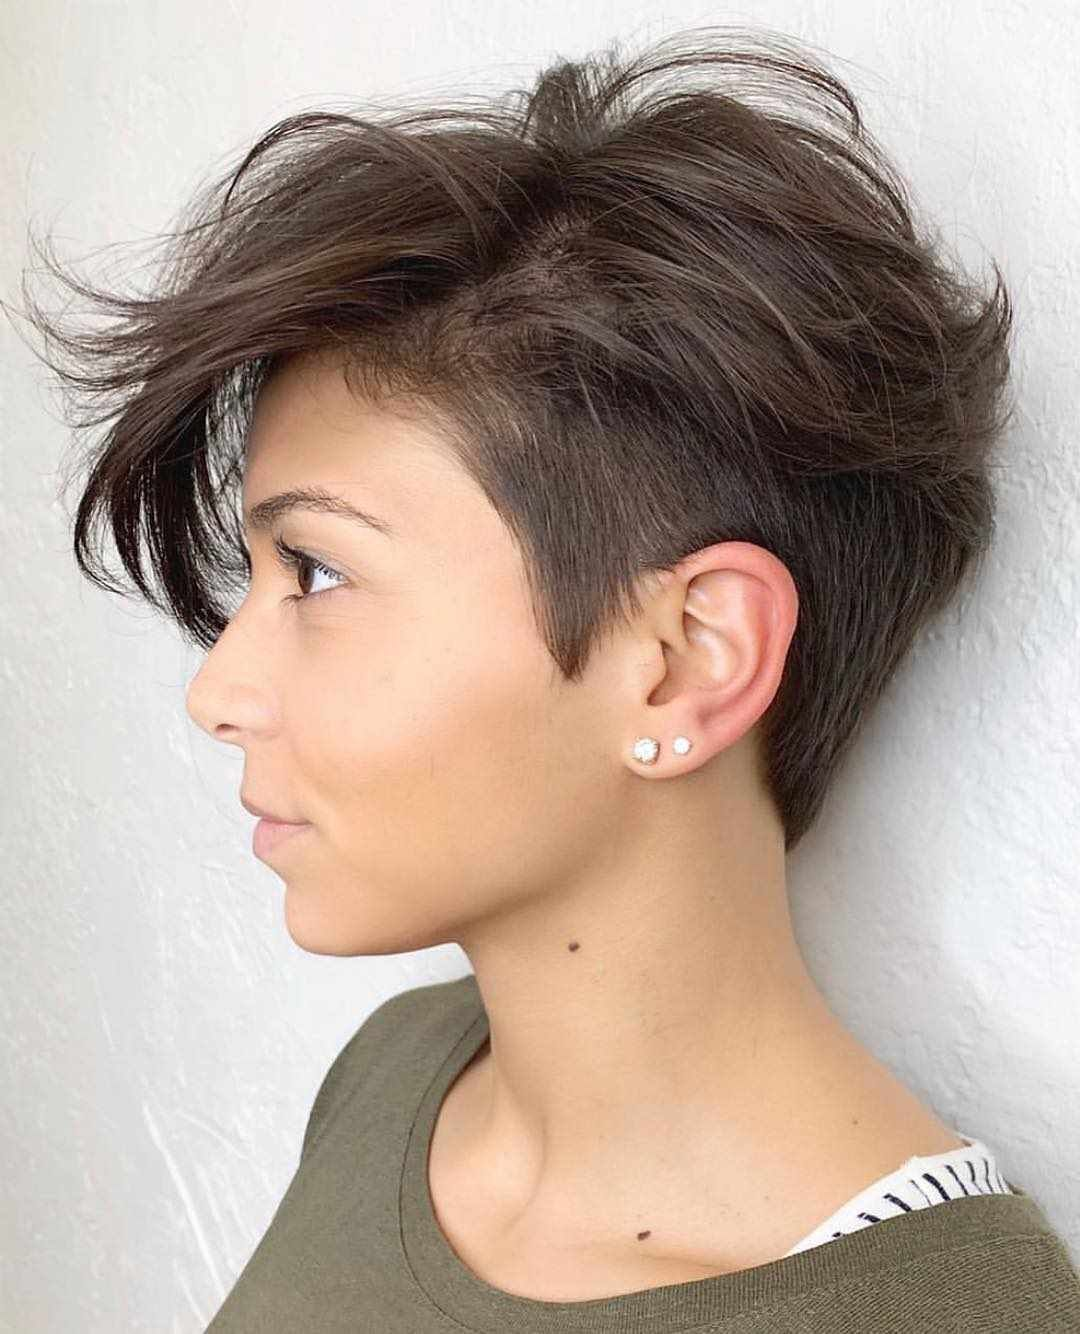 Be Inspired By This 40 Short Hairstyles For Your Next Hairdresser Visit Short Hairstyles For Thick Hair Thick Hair Styles Short Hair Styles